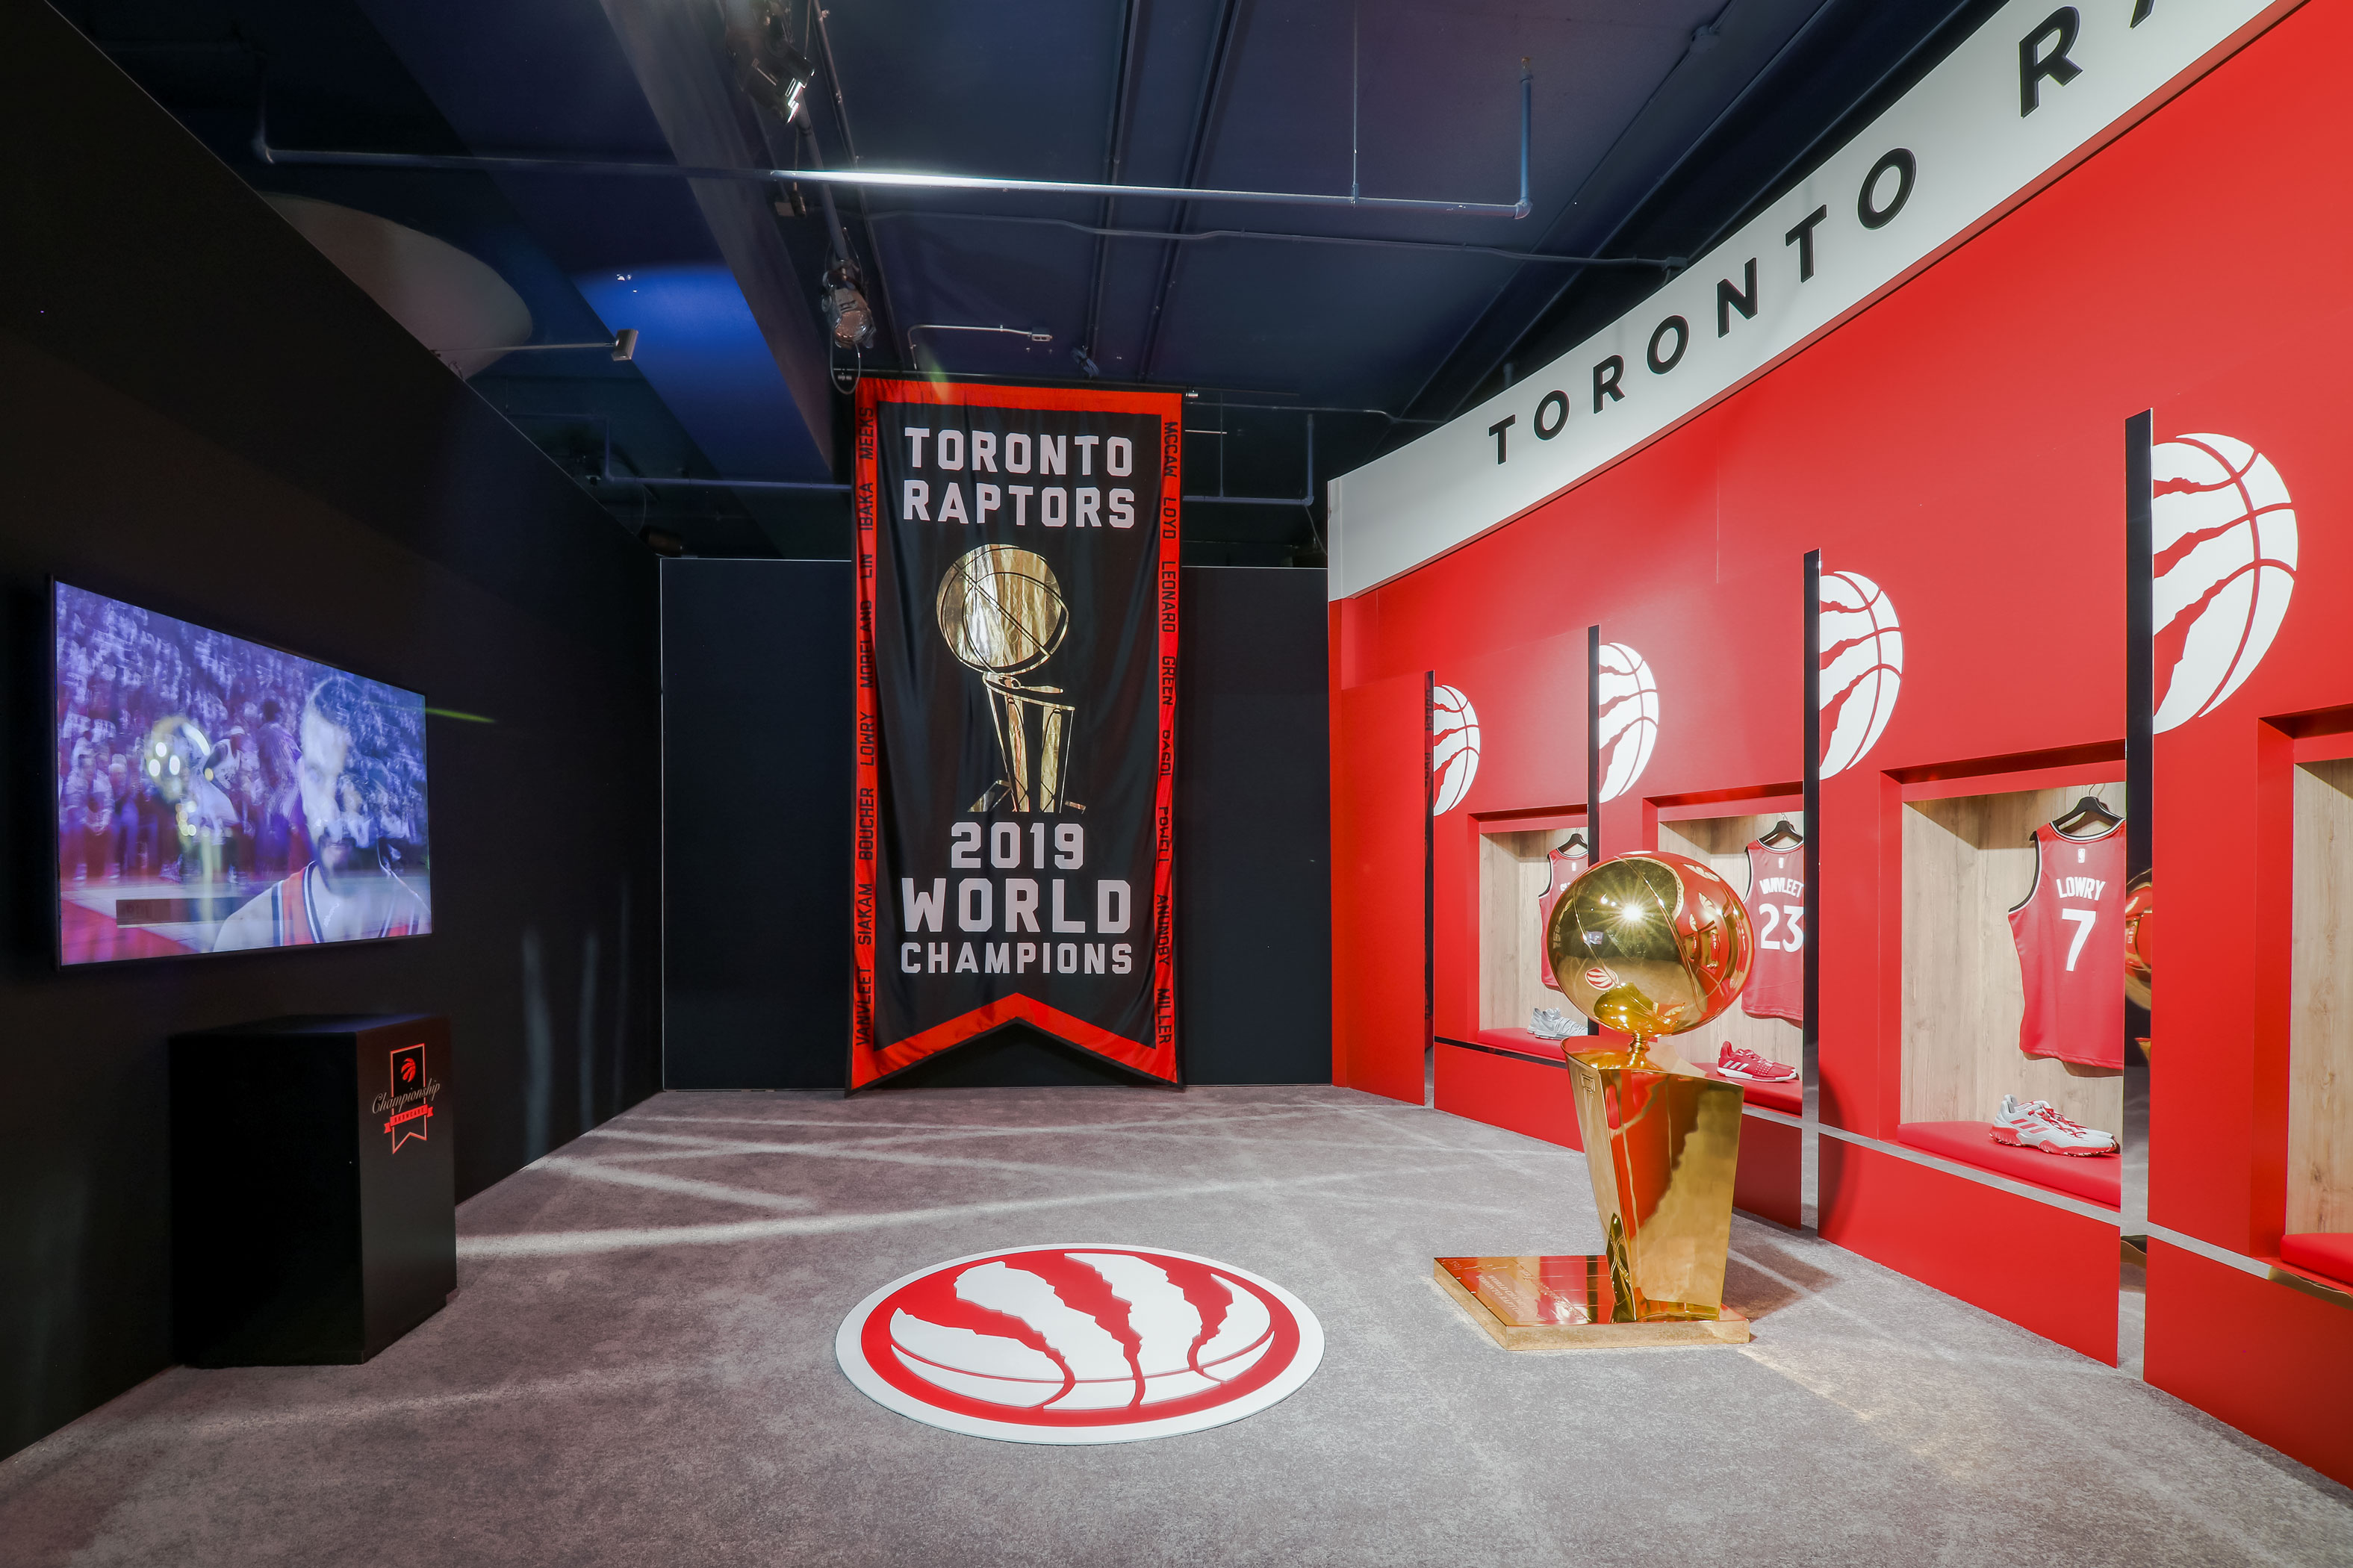 ASTOUND_MLSE_Raptors_2019_Showcase_(1)